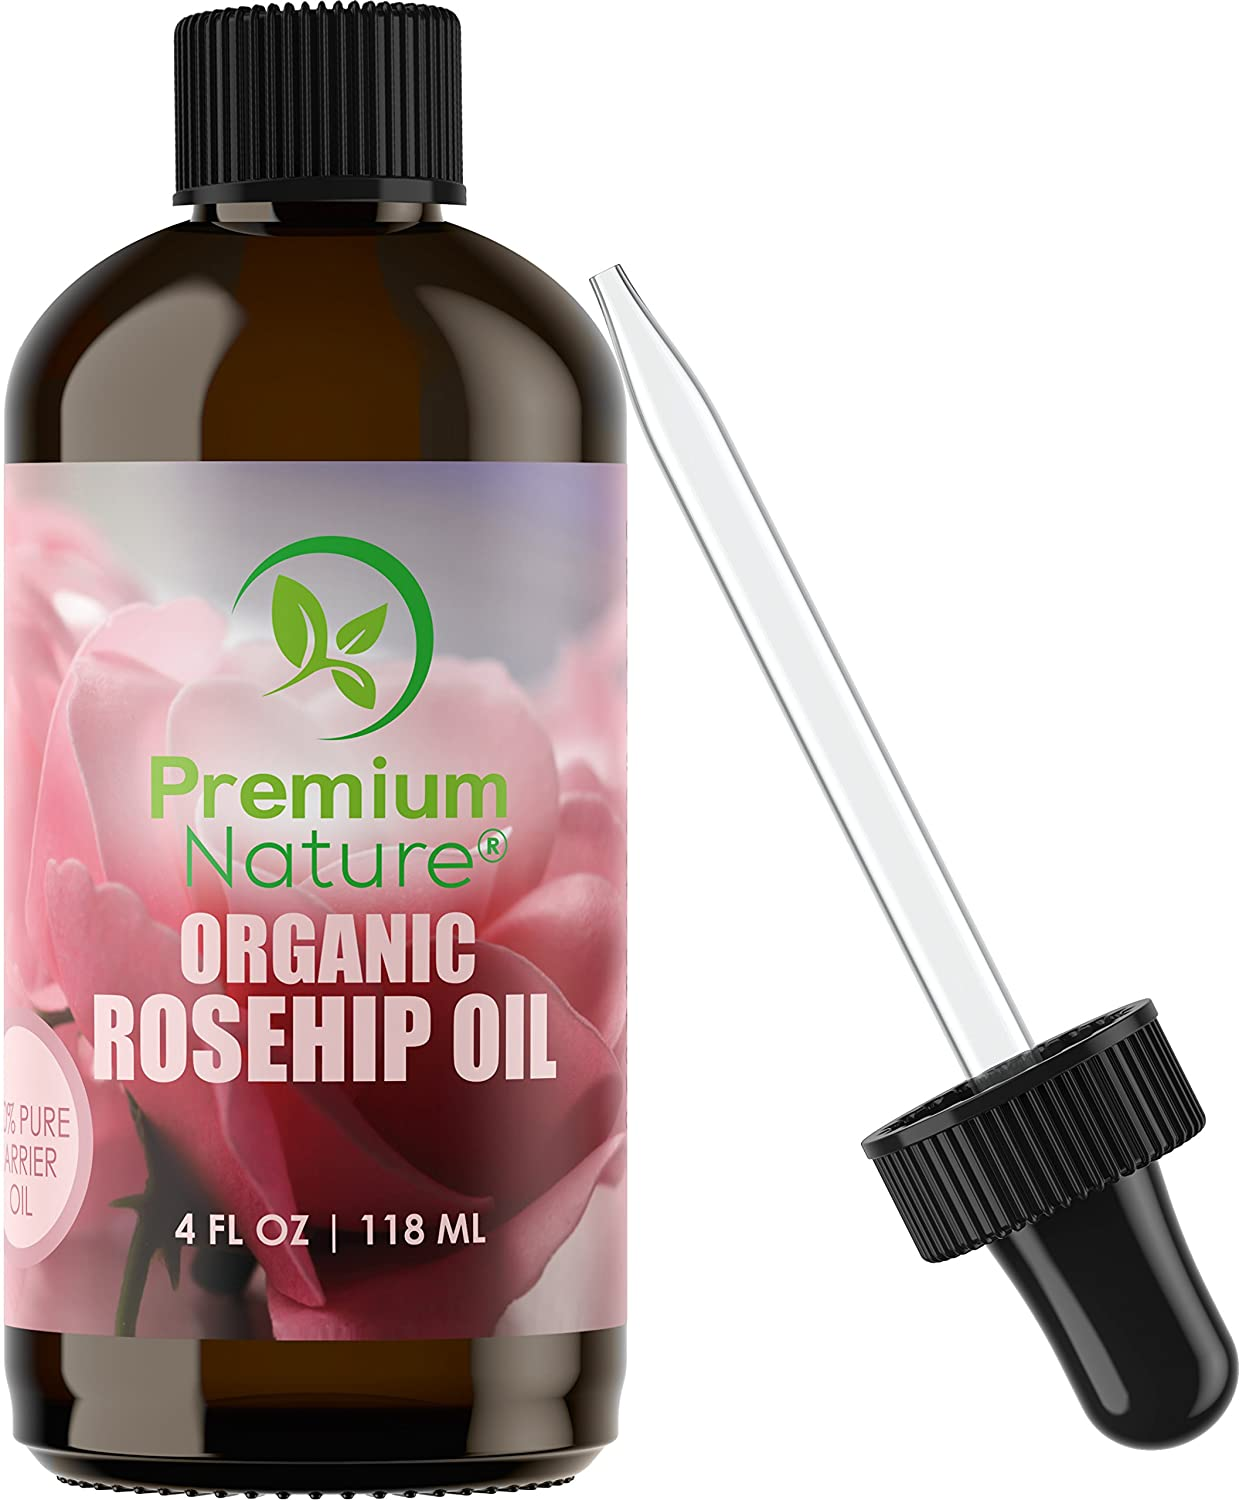 Organic Rosehip Seed Essential Oil - 4 oz Pure Cold Pressed Unrefined Rose Hip Serum for Face Hair Nails 100% Natural Skin Care Moisturizer Scar Removal & Facial Acne Treatment Anti Aging Vitamin Oils Premium Nature